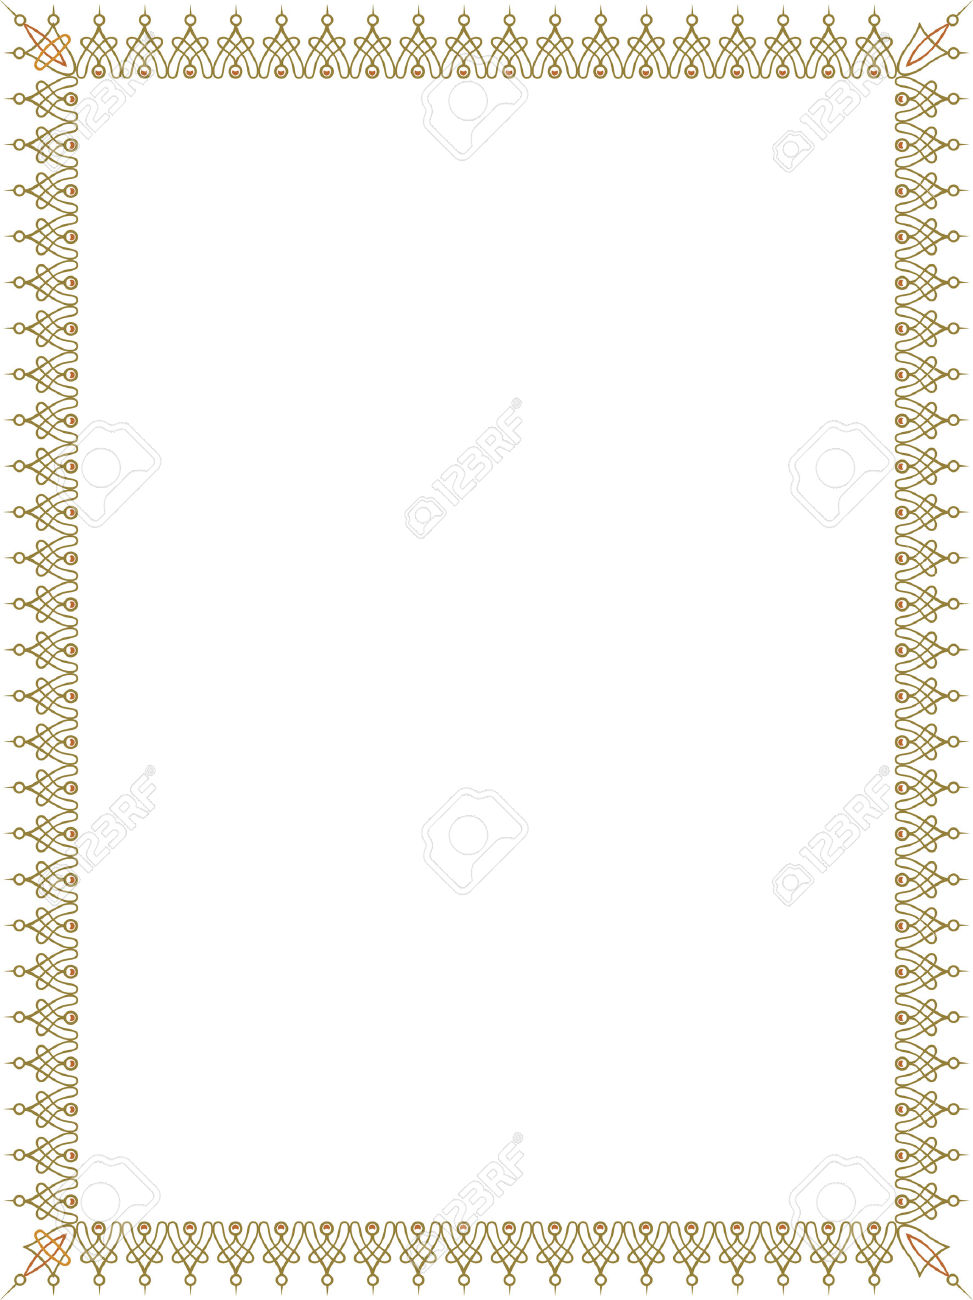 Thin frame clipart banner black and white Simple Style Thin Frame, Colored Royalty Free Cliparts, Vectors ... banner black and white